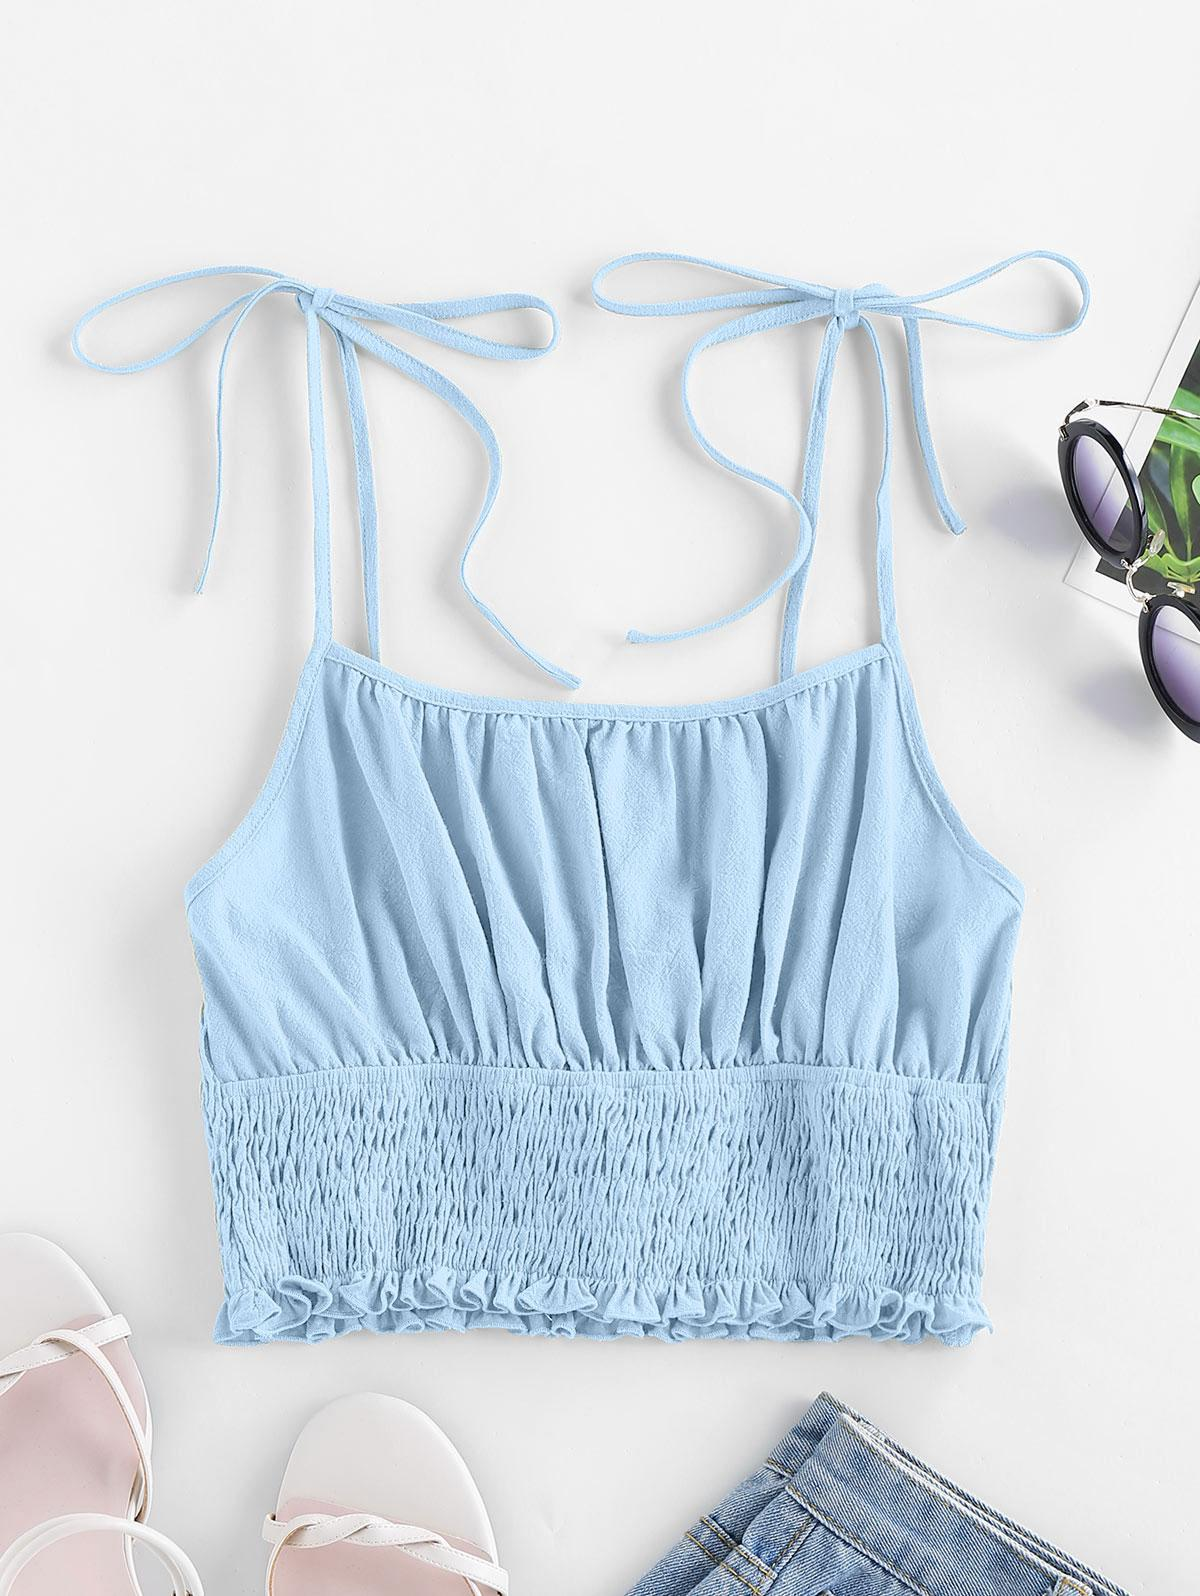 ZAFUL Tie Strap Ruched Smocked Cami Top